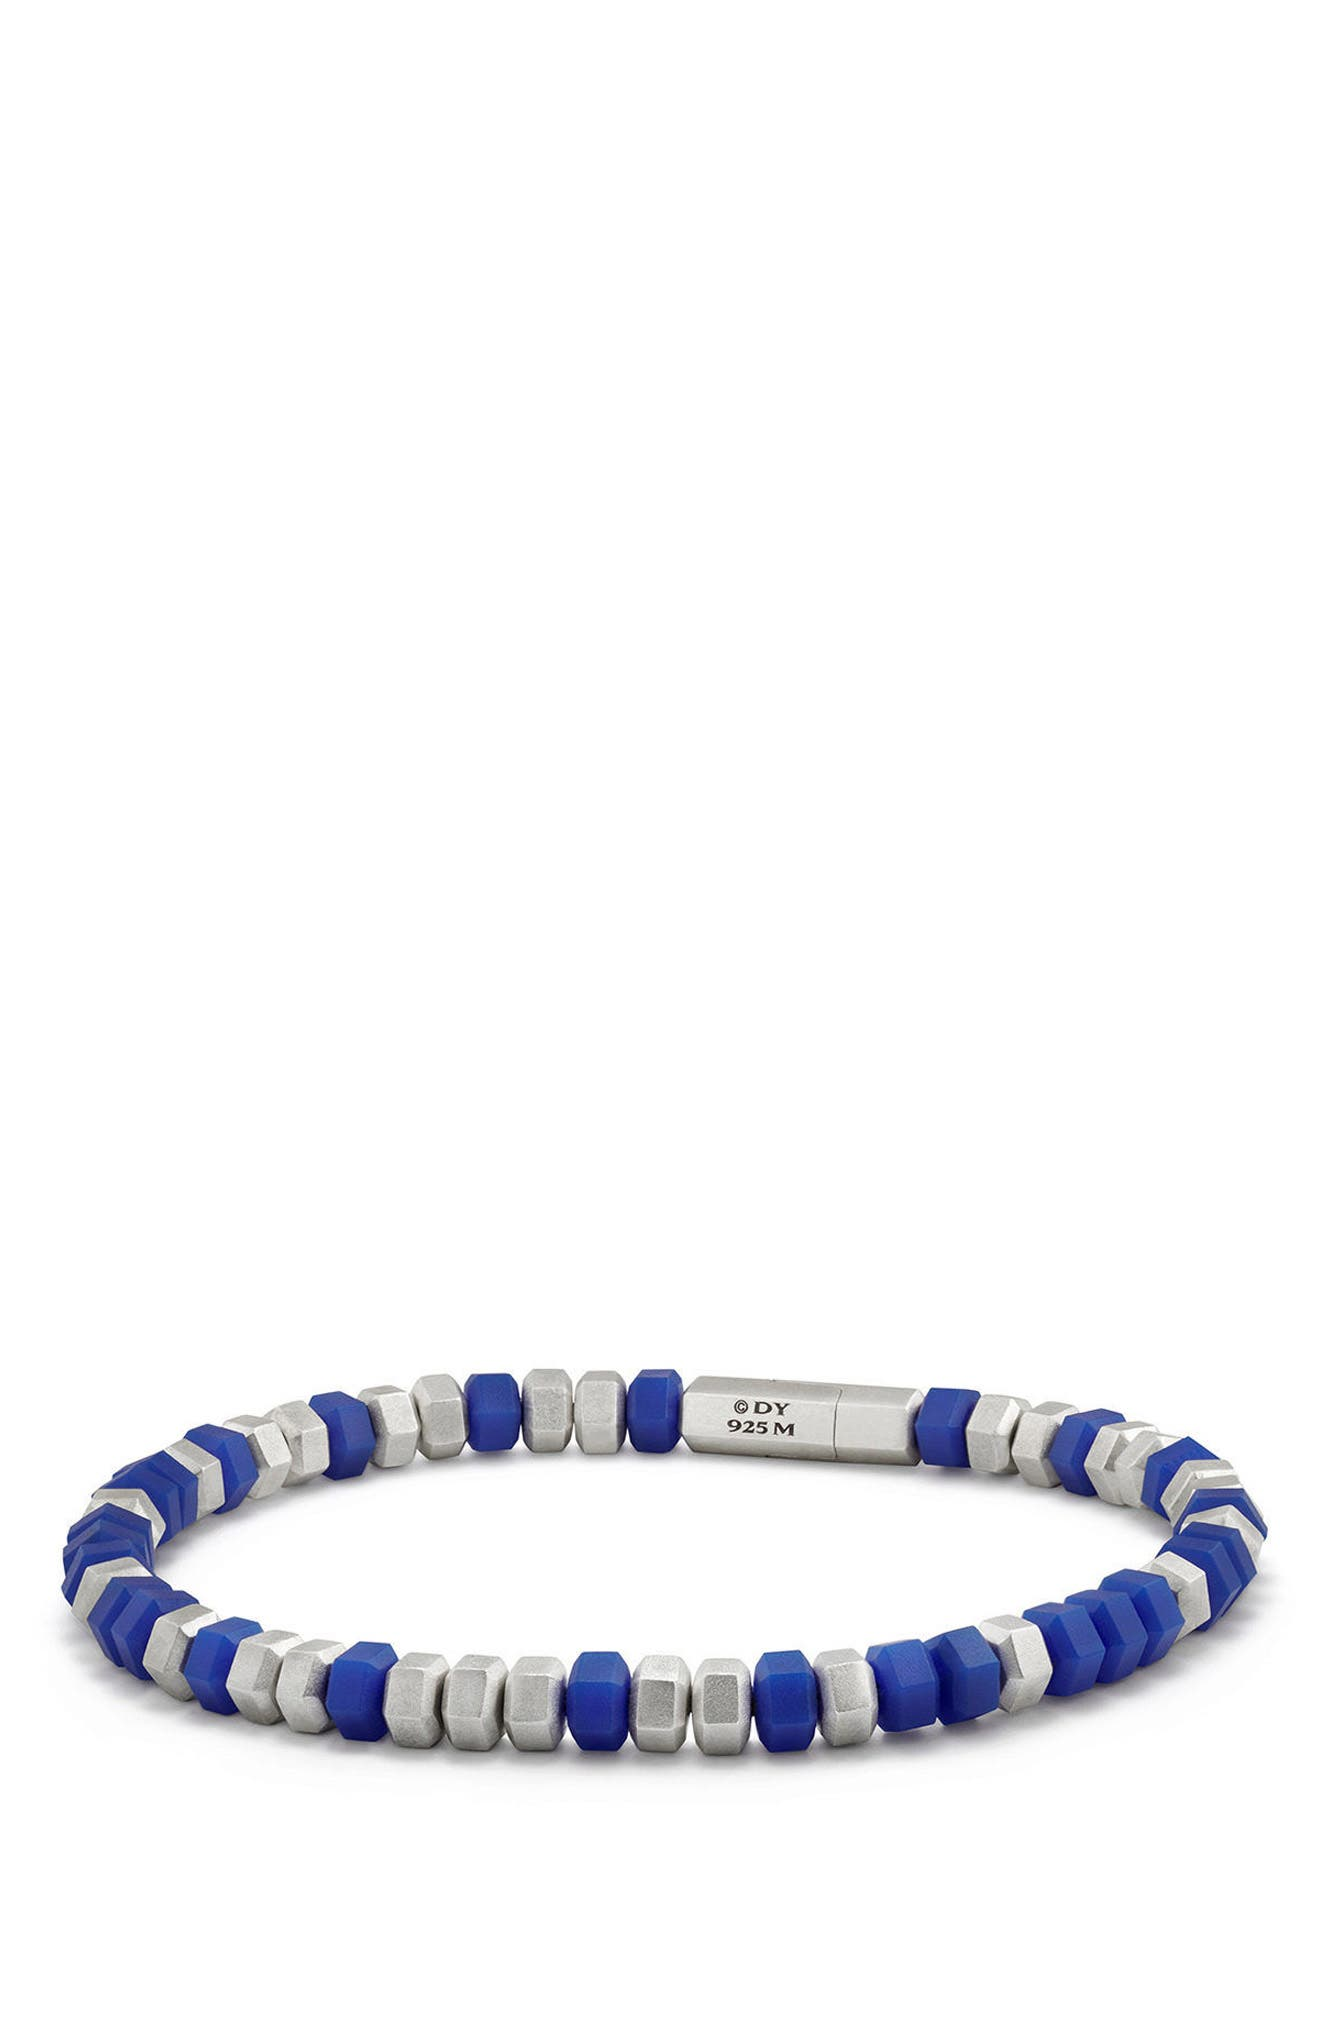 David Yurman Hex Bead Bracelet